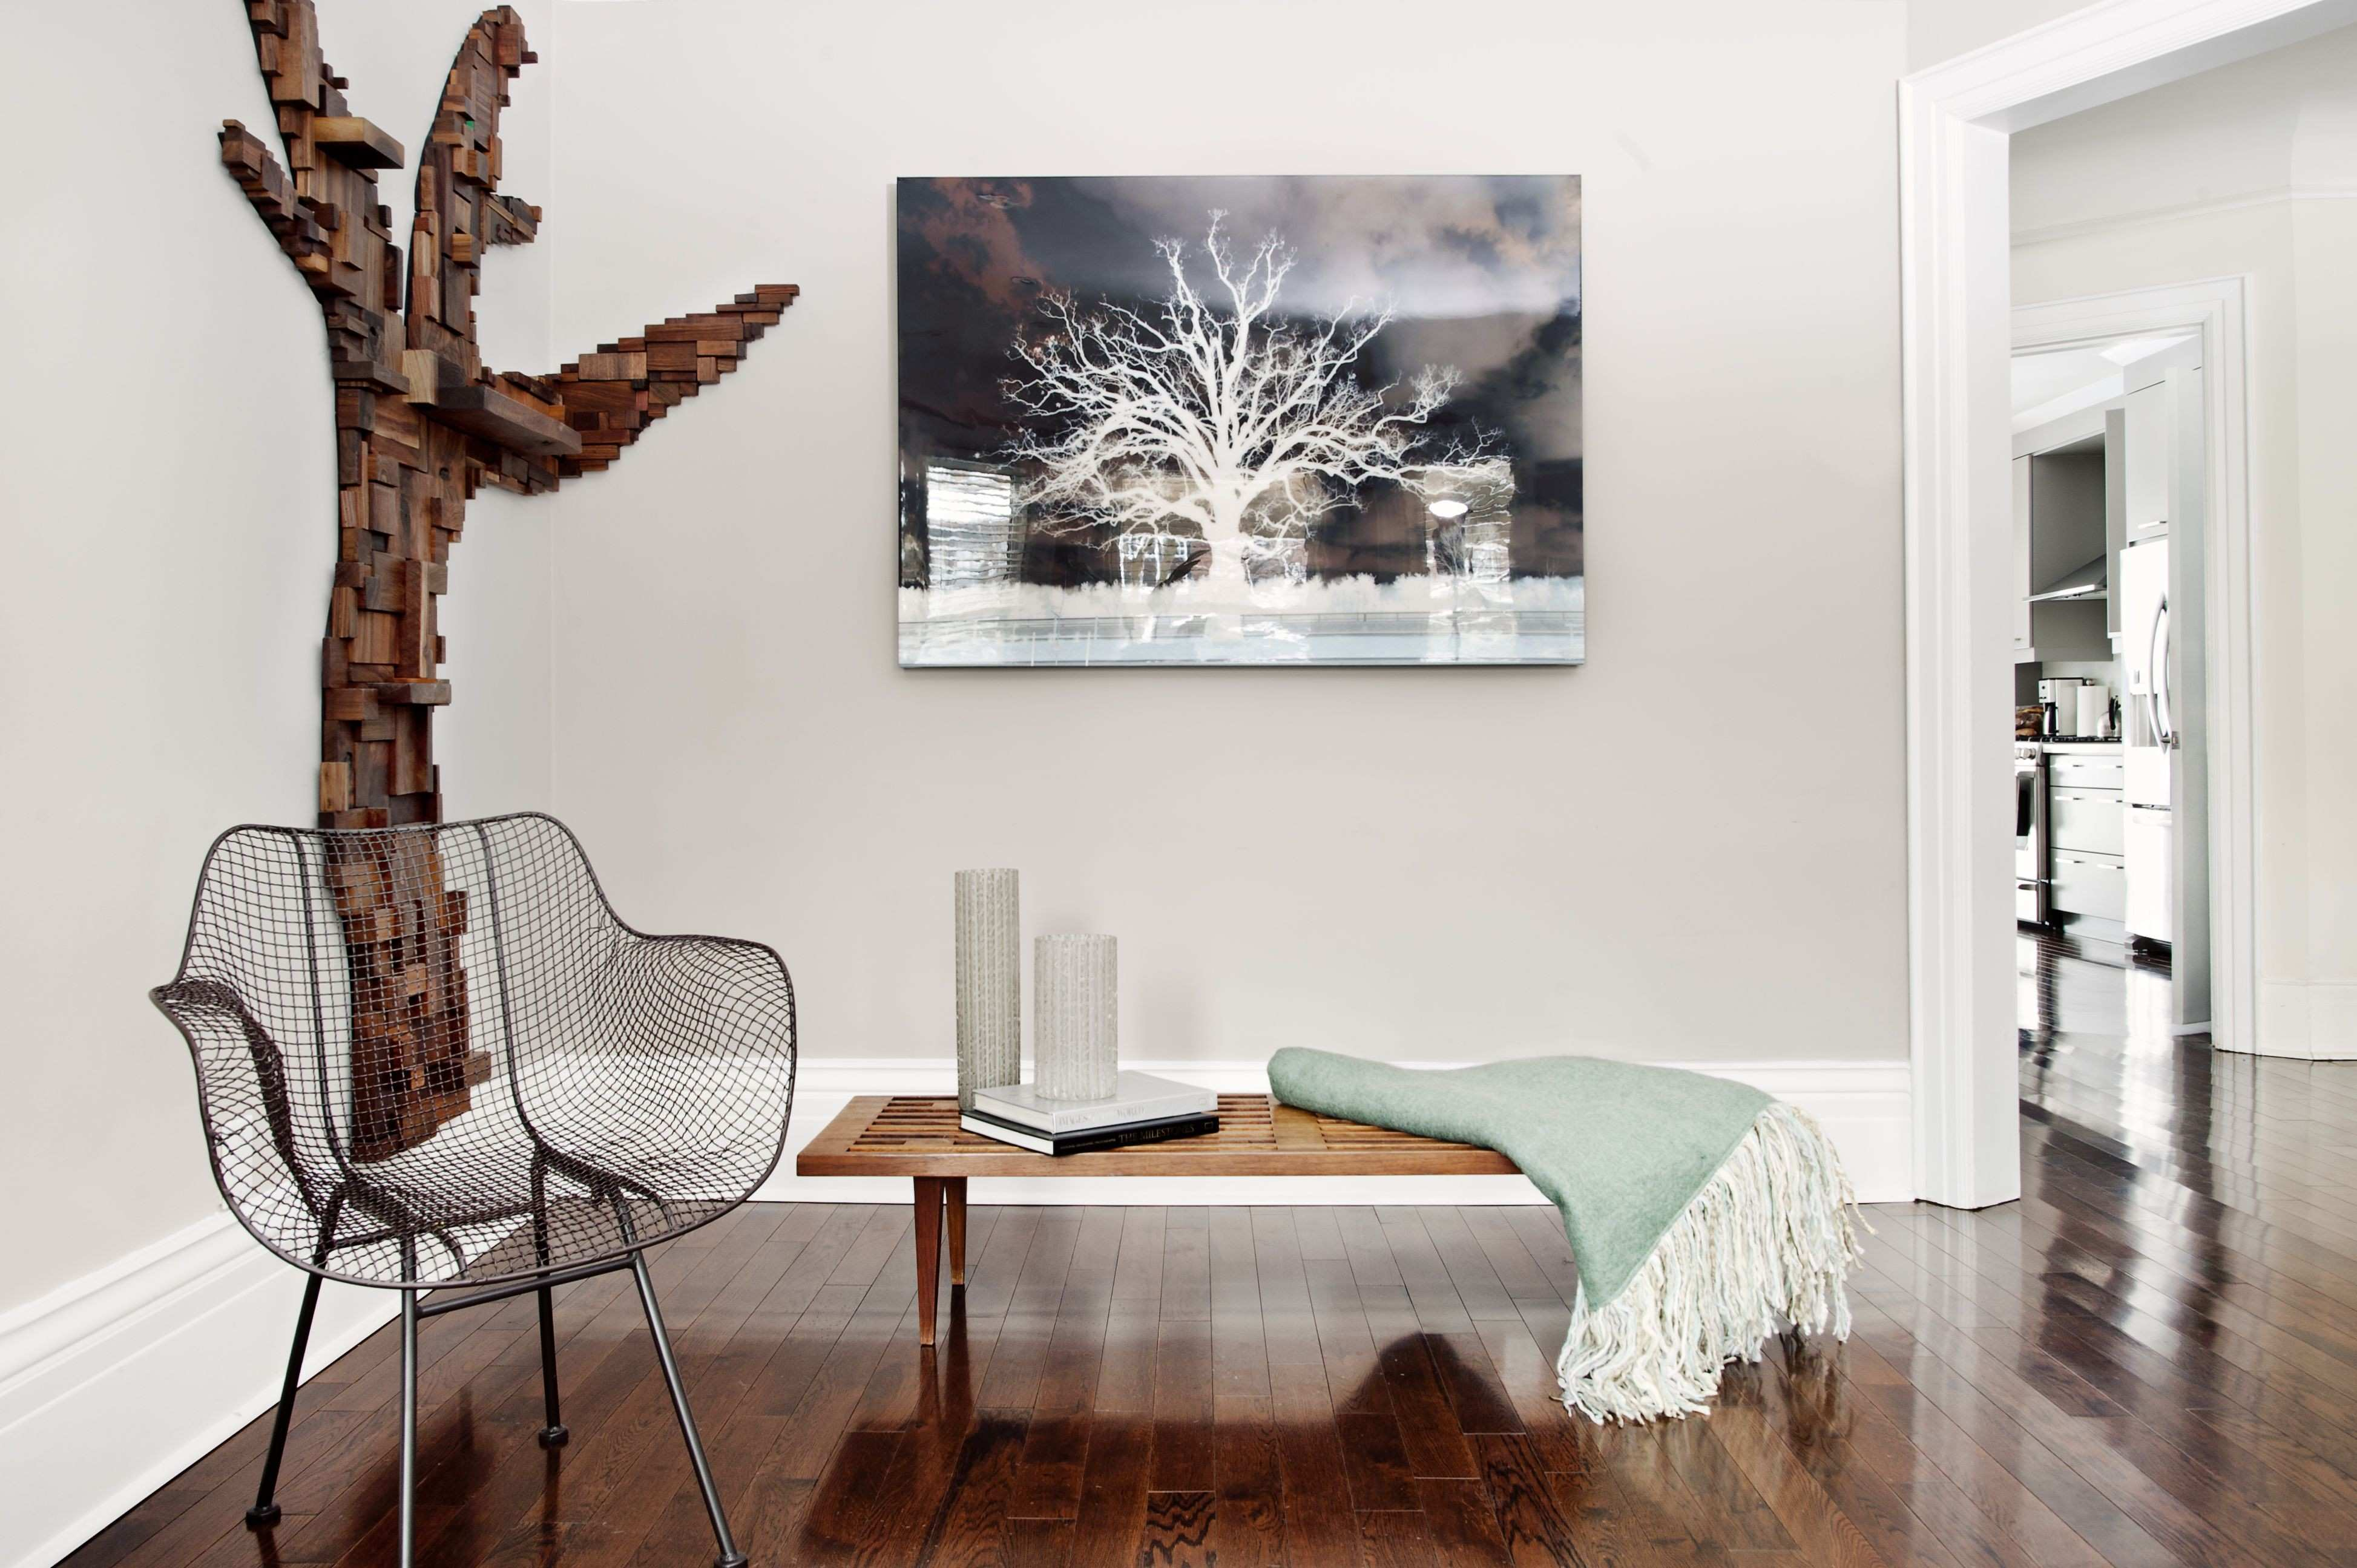 20 Rustic Wall Decor Ideas To Help You Add Rustic Beauty To Your